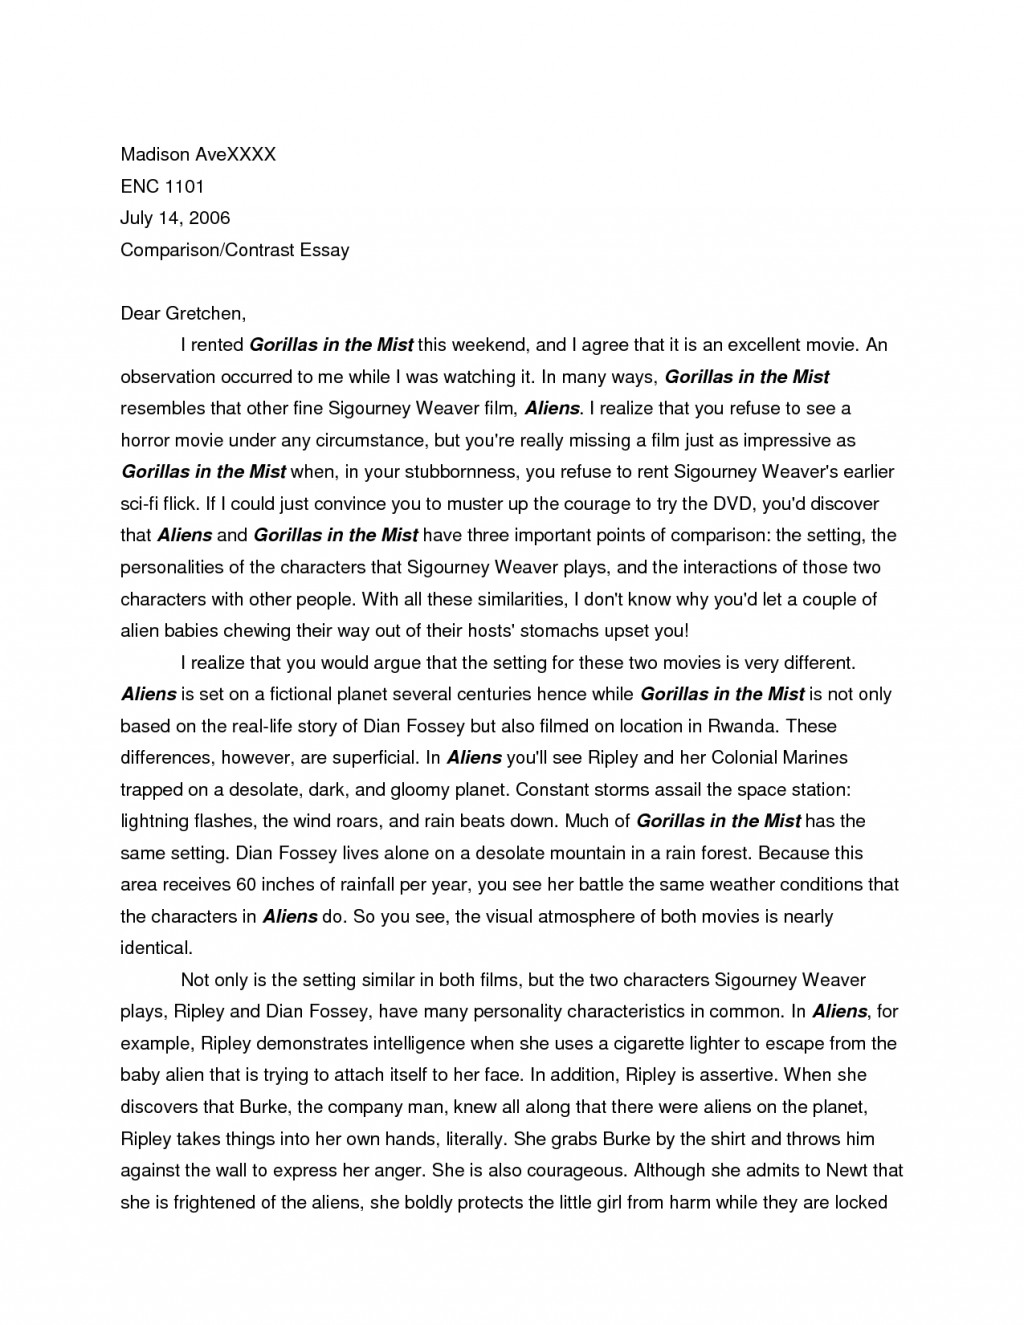 015 Compare And Contrast Essays Essay Example Writing Comparison Research Paper Online Comparative L Awful Free Examples For College Topics Middle School Large